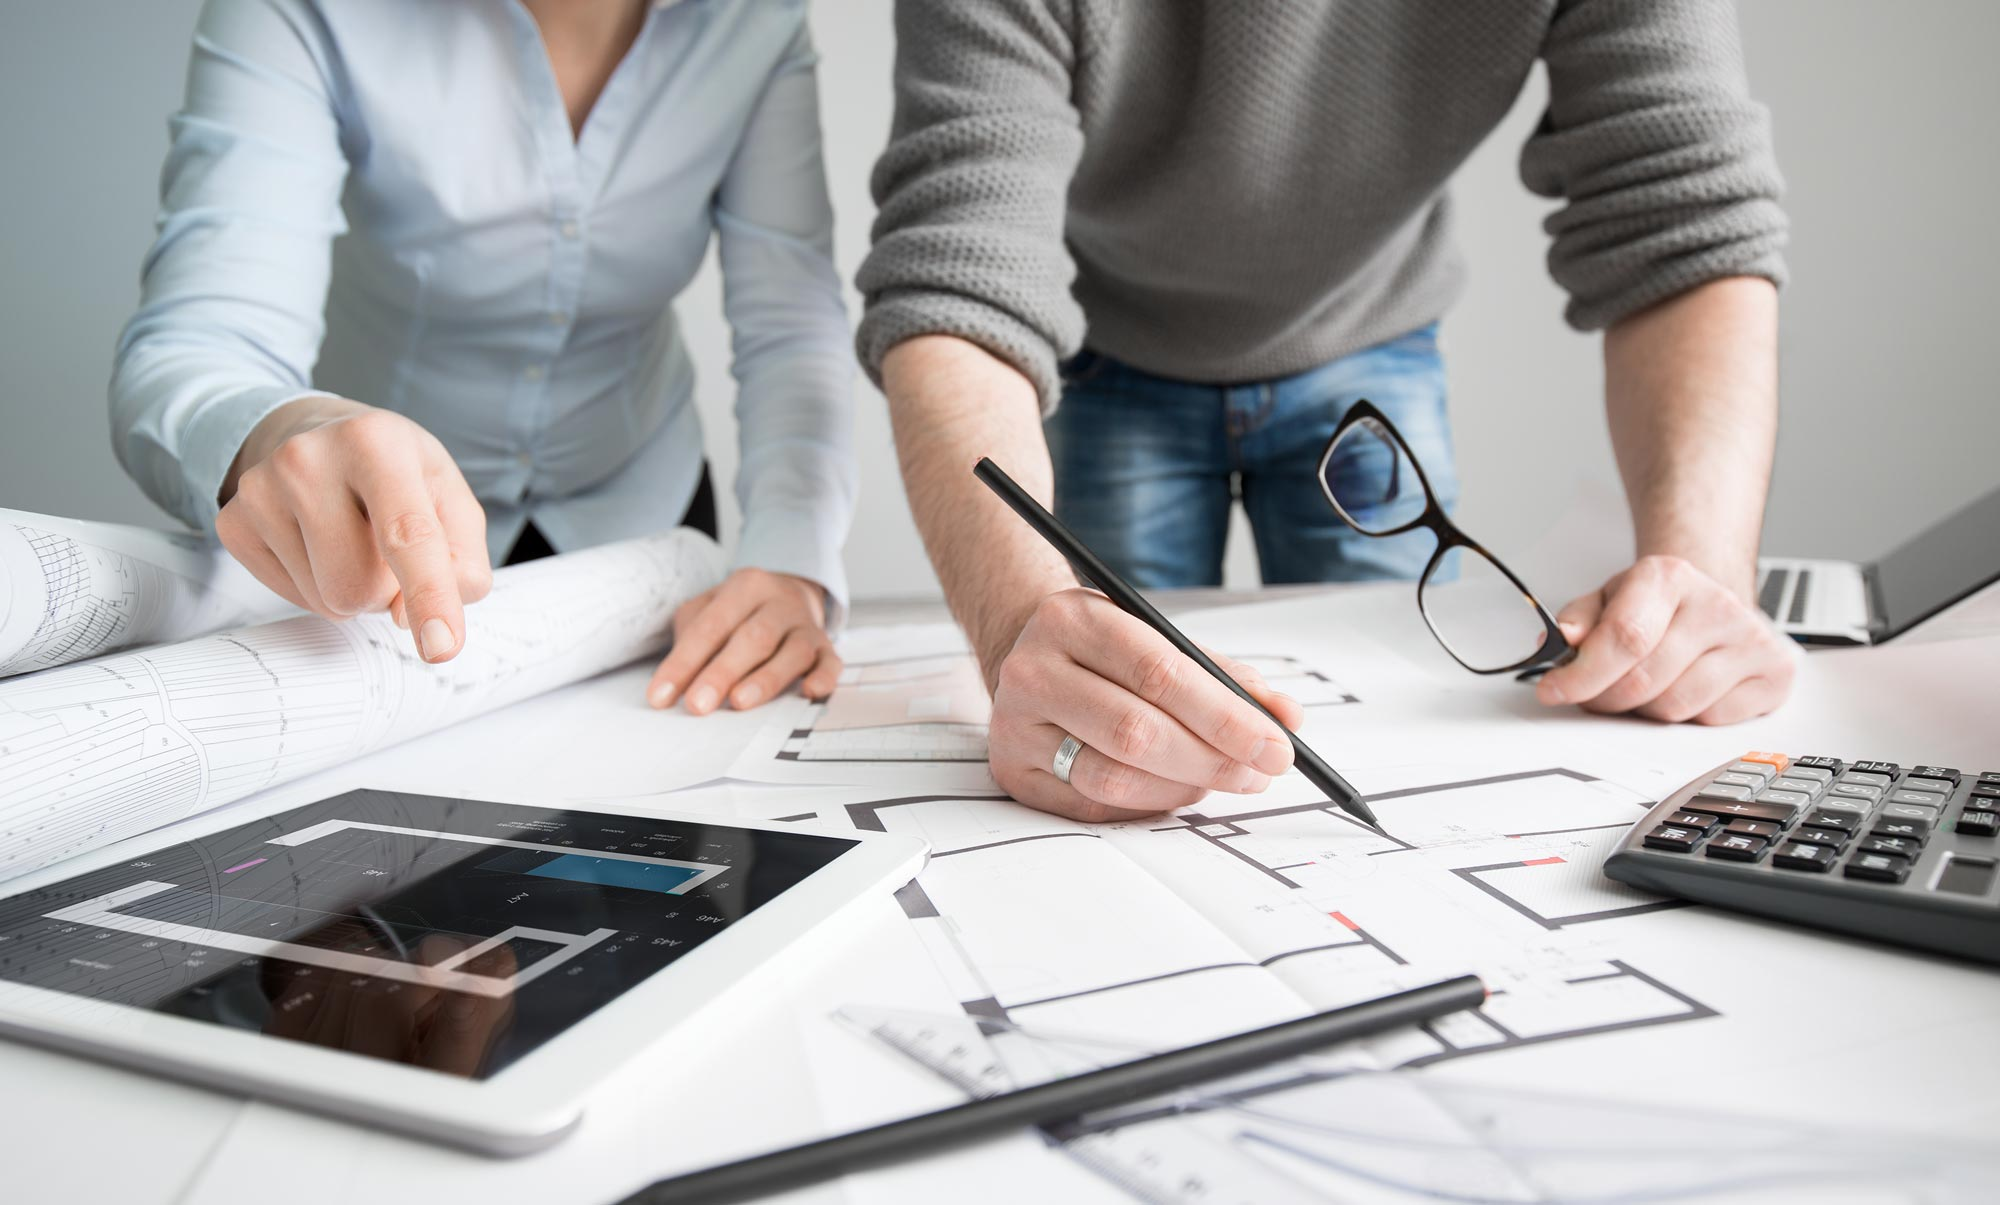 two people leaning over the plan of the kitchen